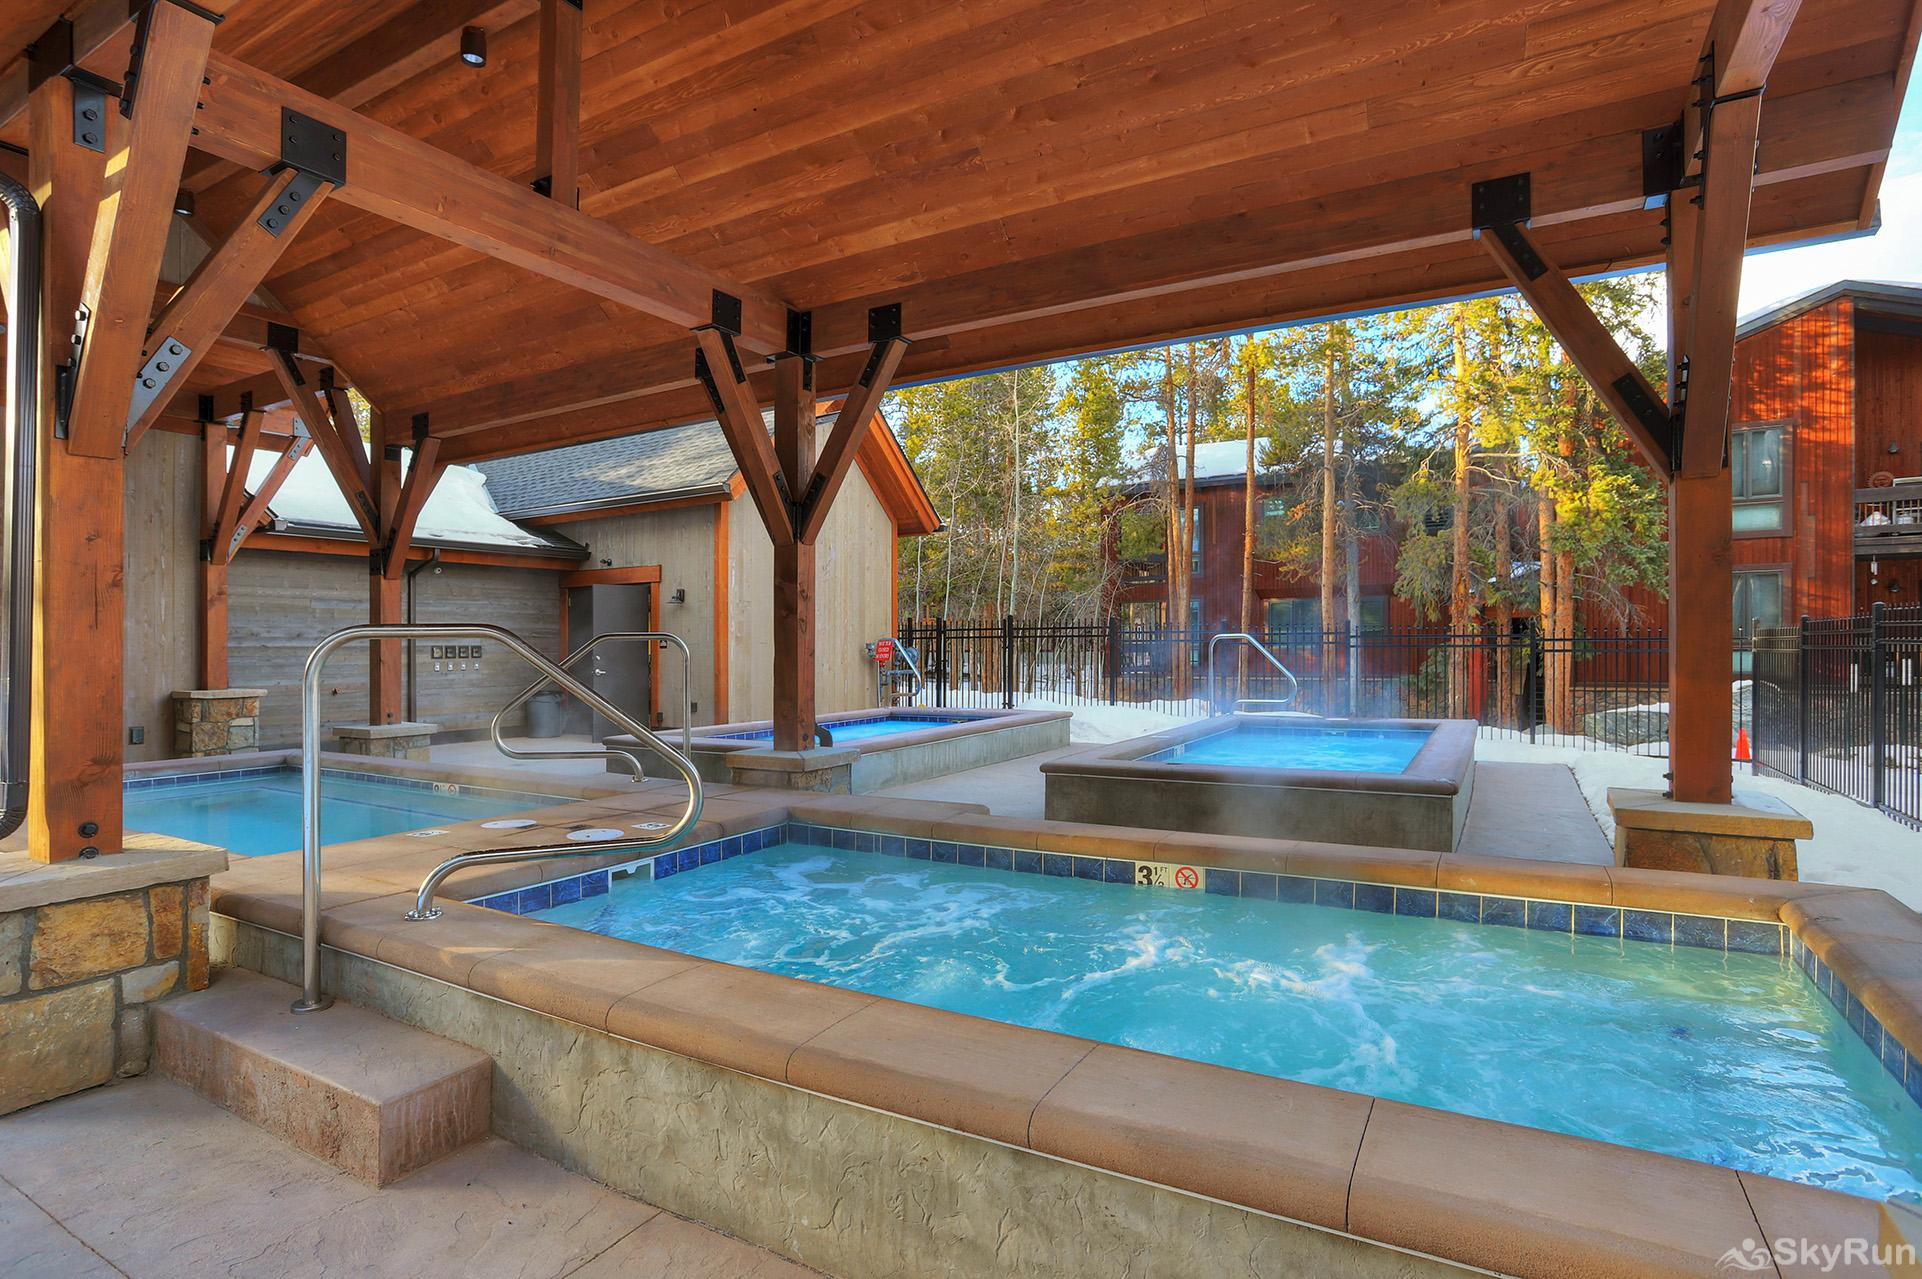 Powderhorn C202 Relax and unwind in the outdoor heated pool & hot tubs